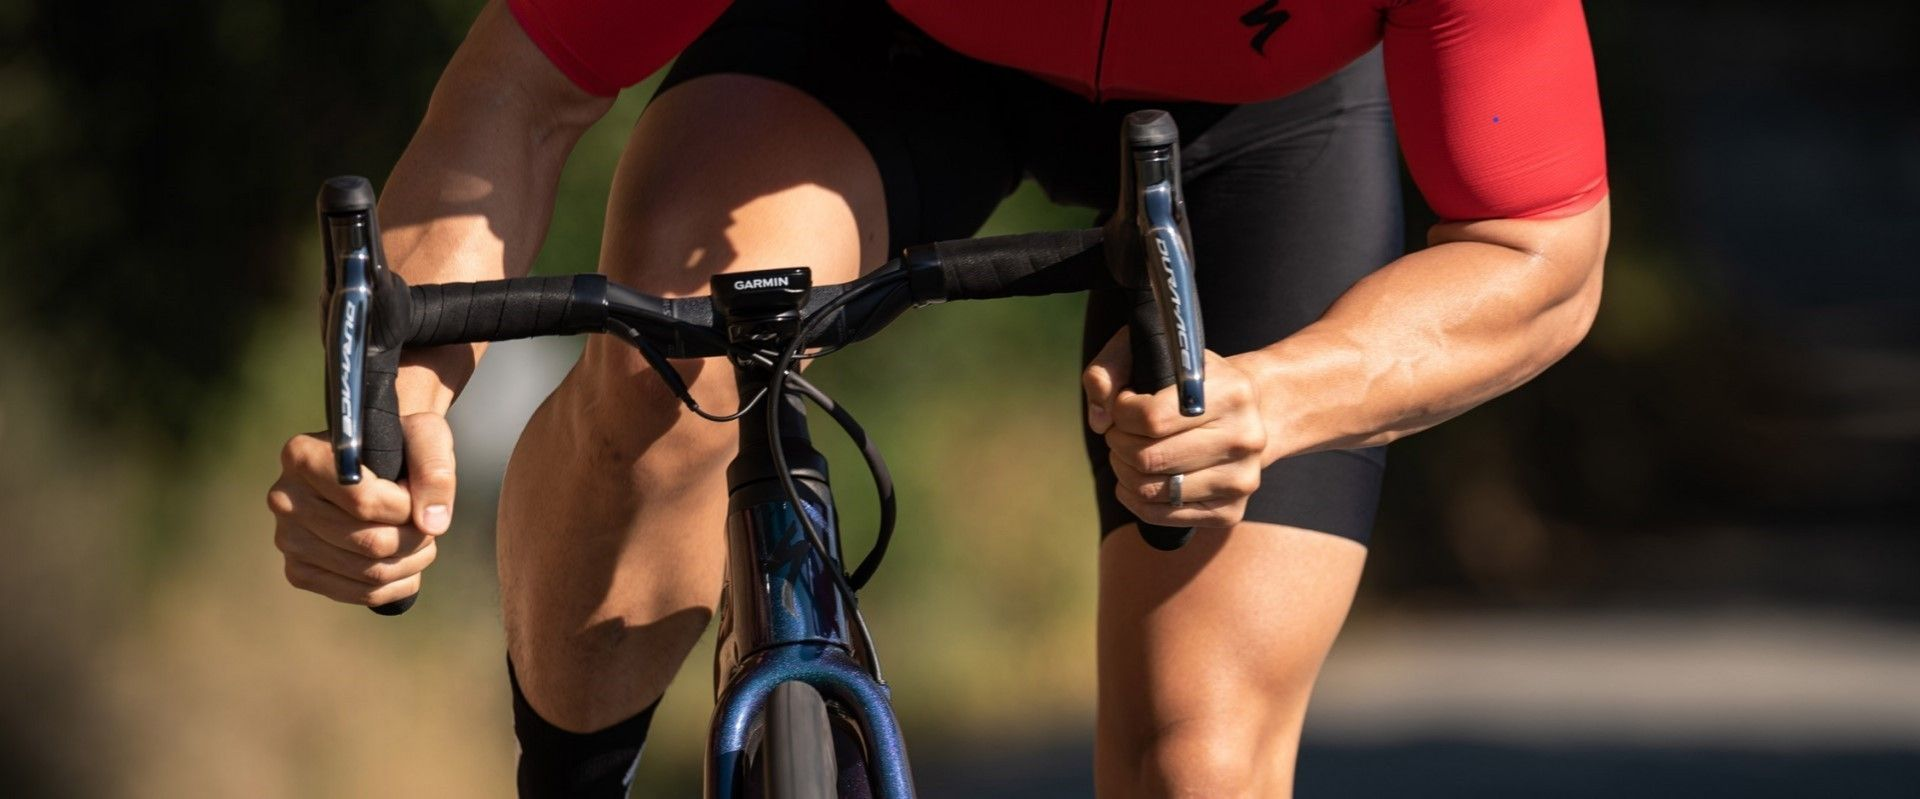 ♥ Triathlon and Cyclocross Bikes ♥ Specialized Concept Store Bicycle Store and Components